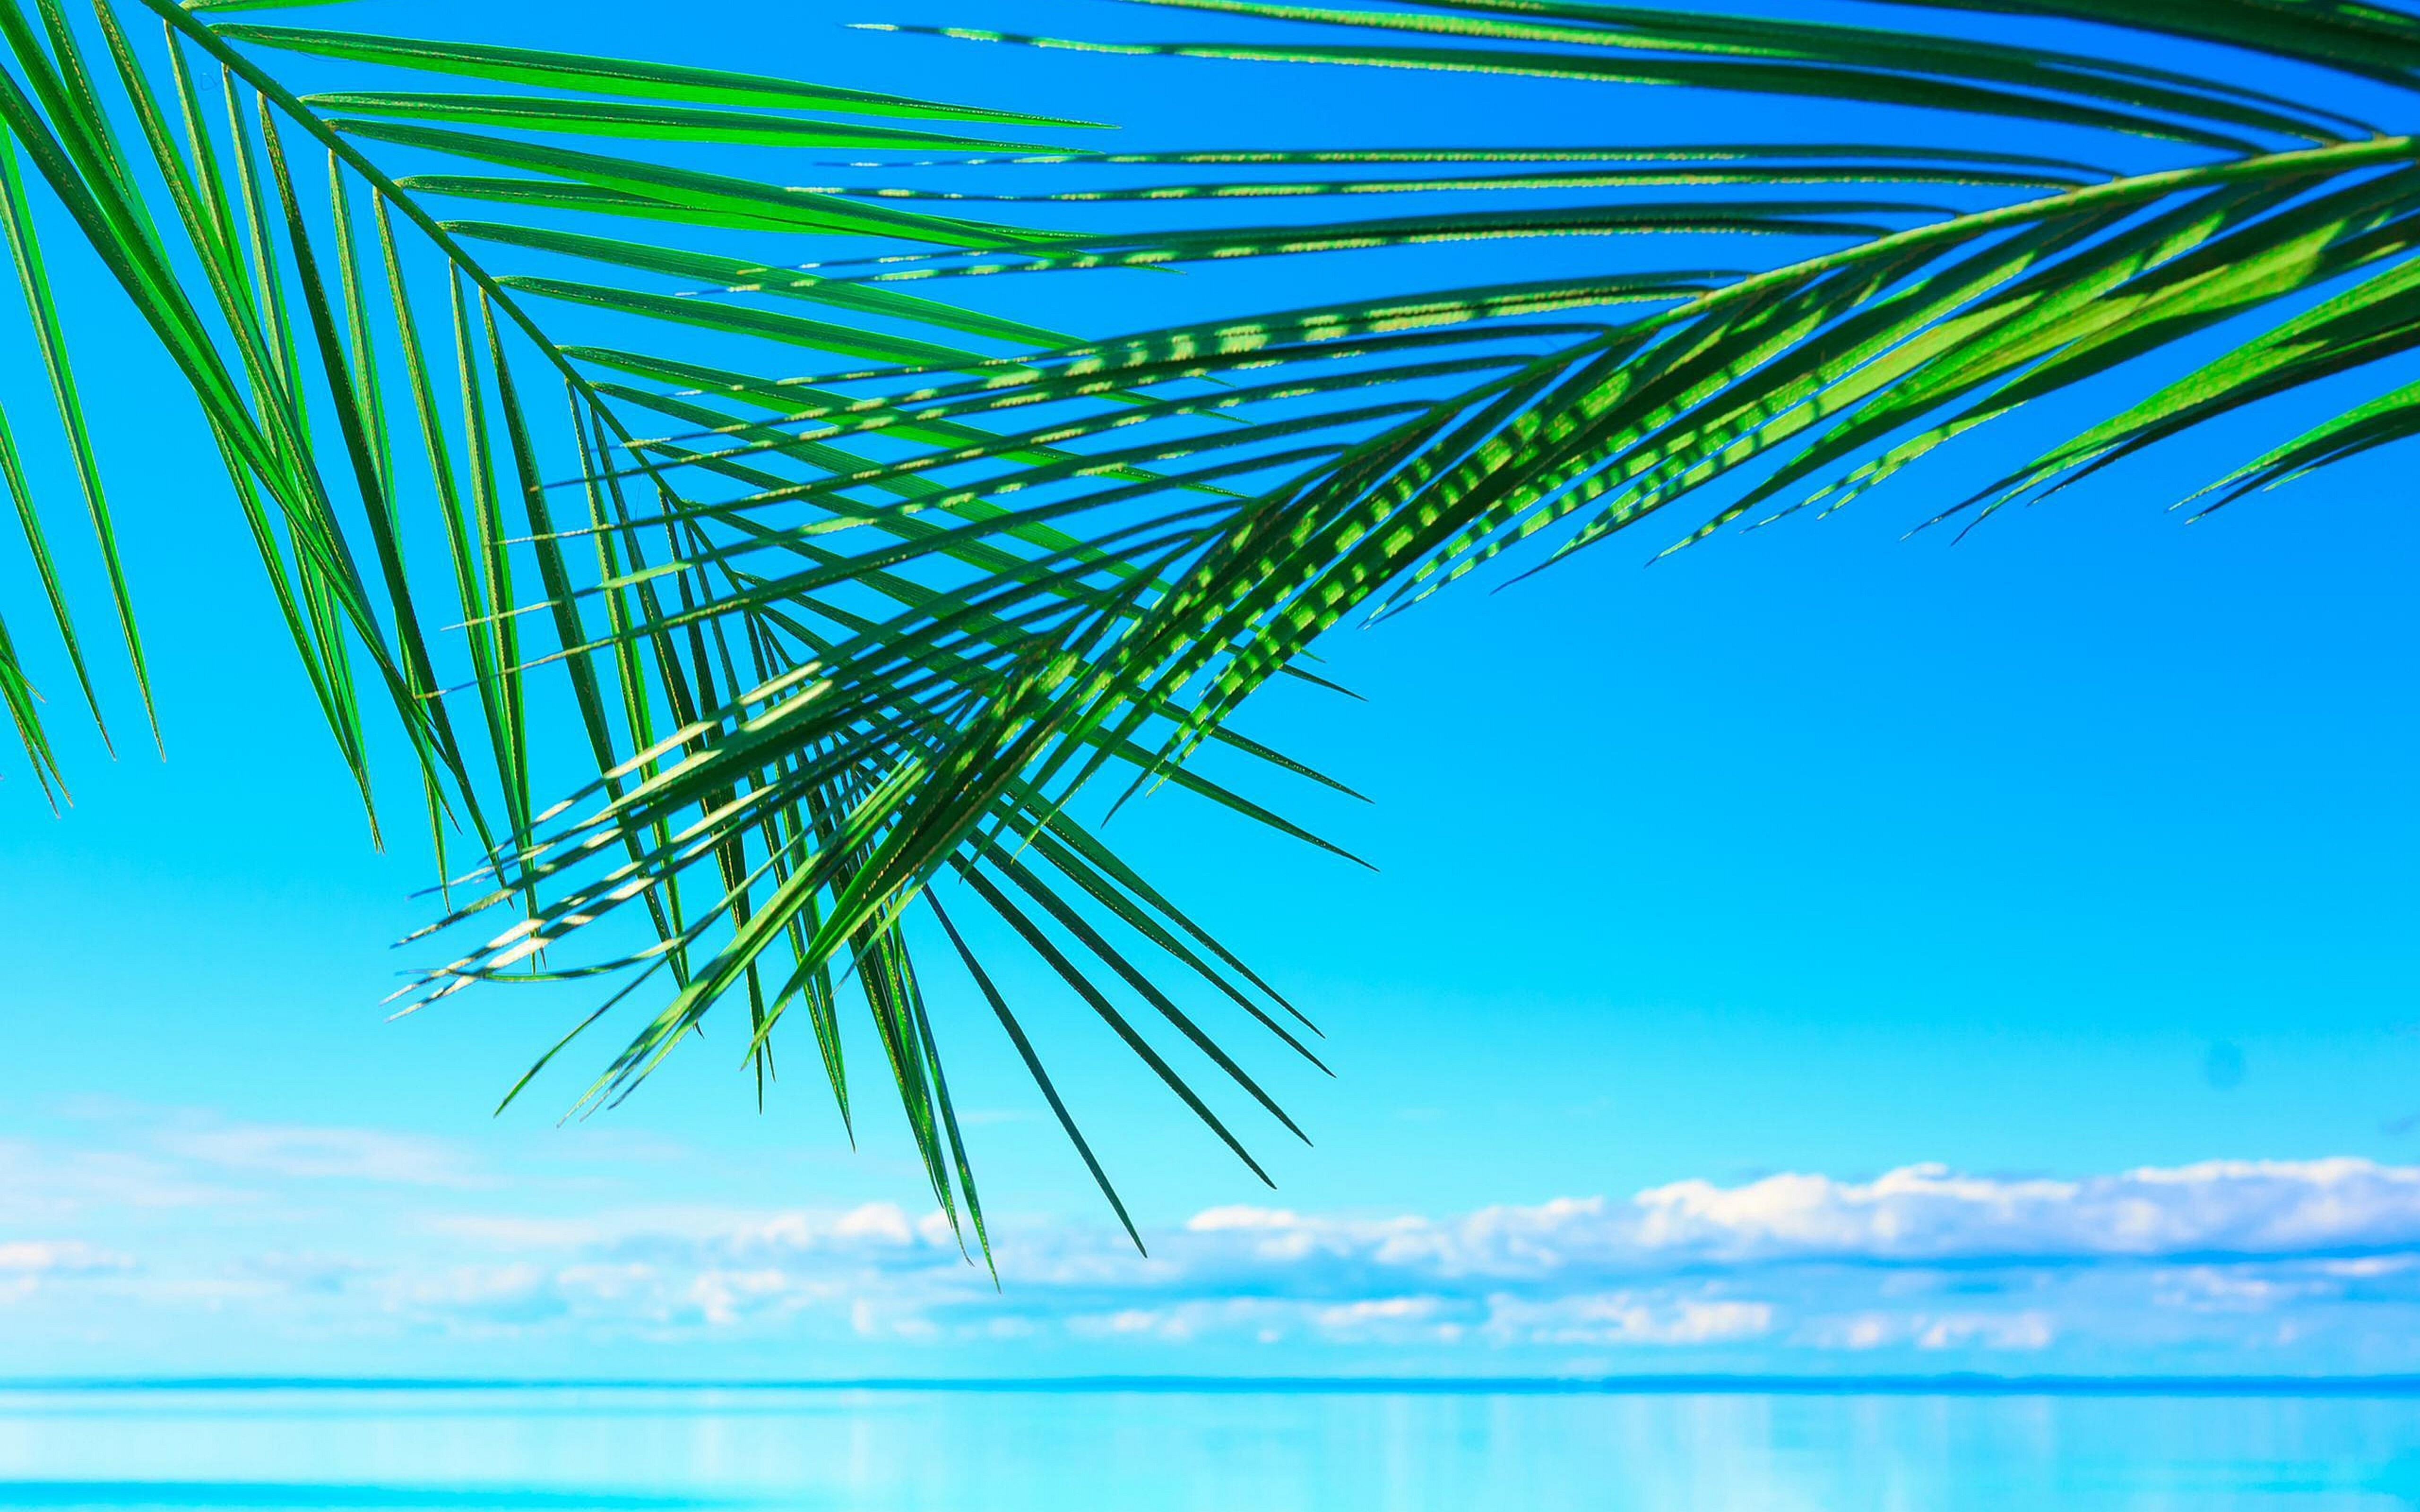 Green palm leaves over the blue water   HD summer wallpaper 5120x3200